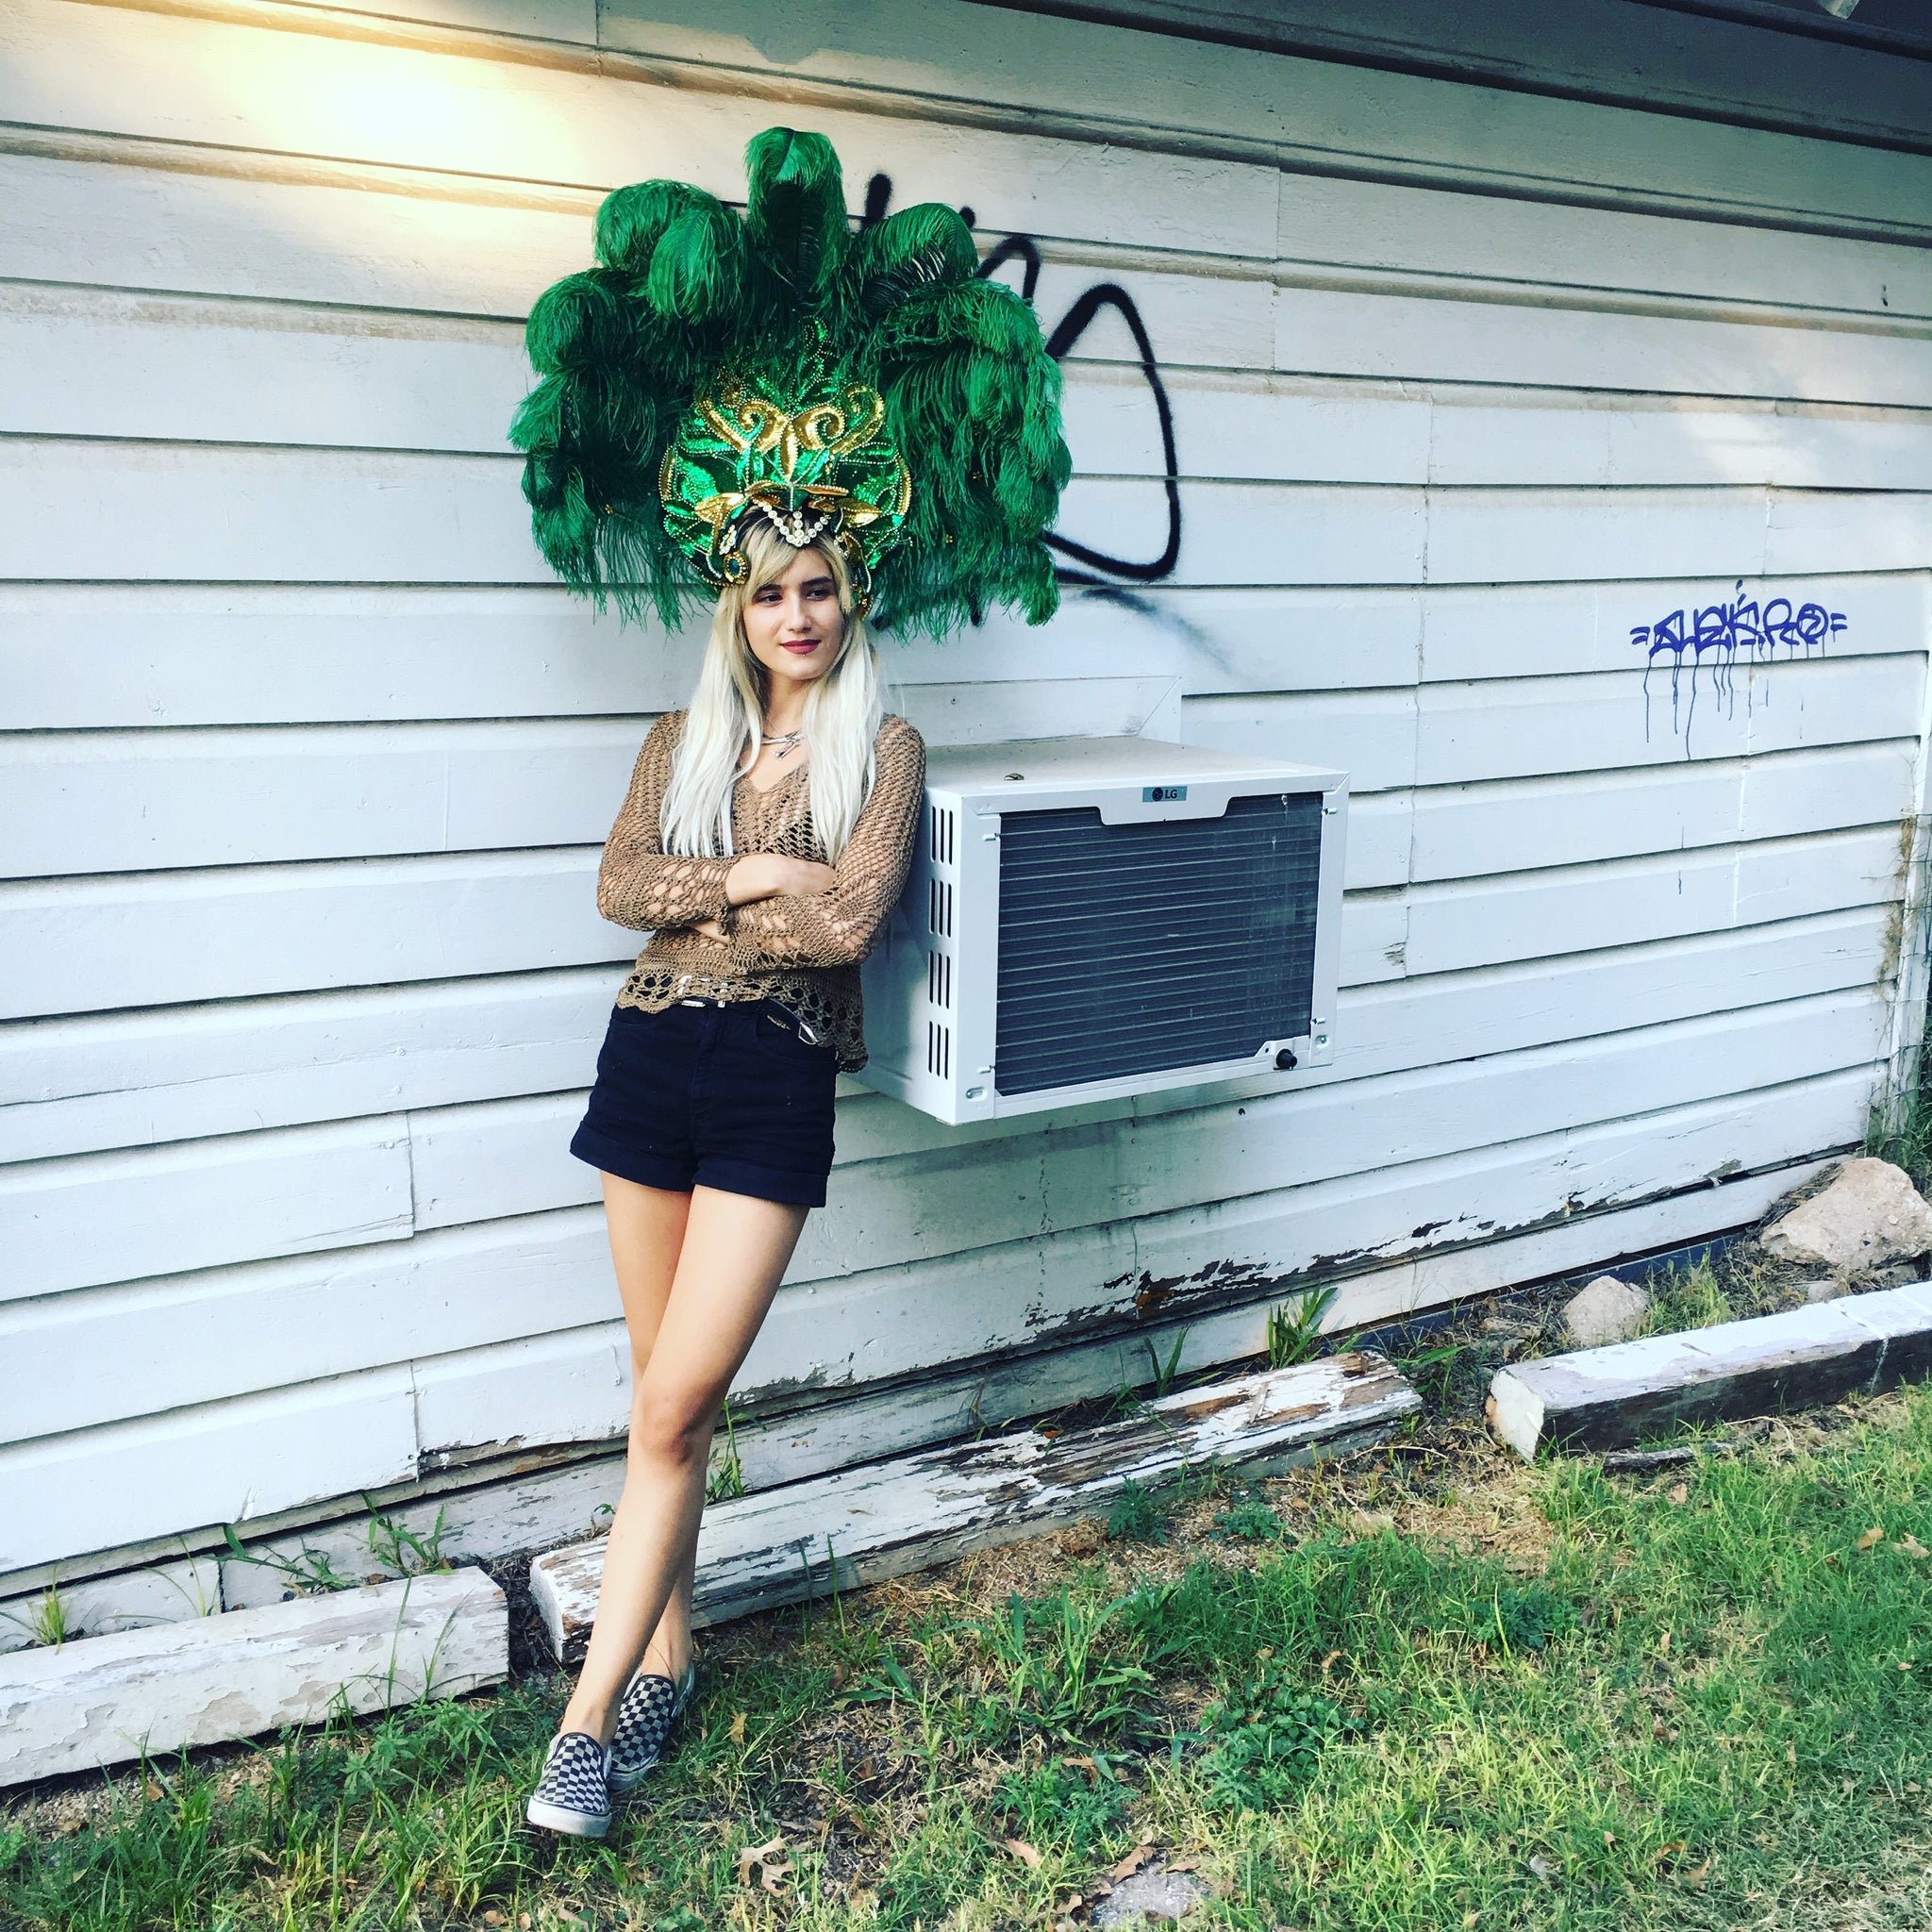 Vintage Green and Gold Samba / Showgirl Headdress